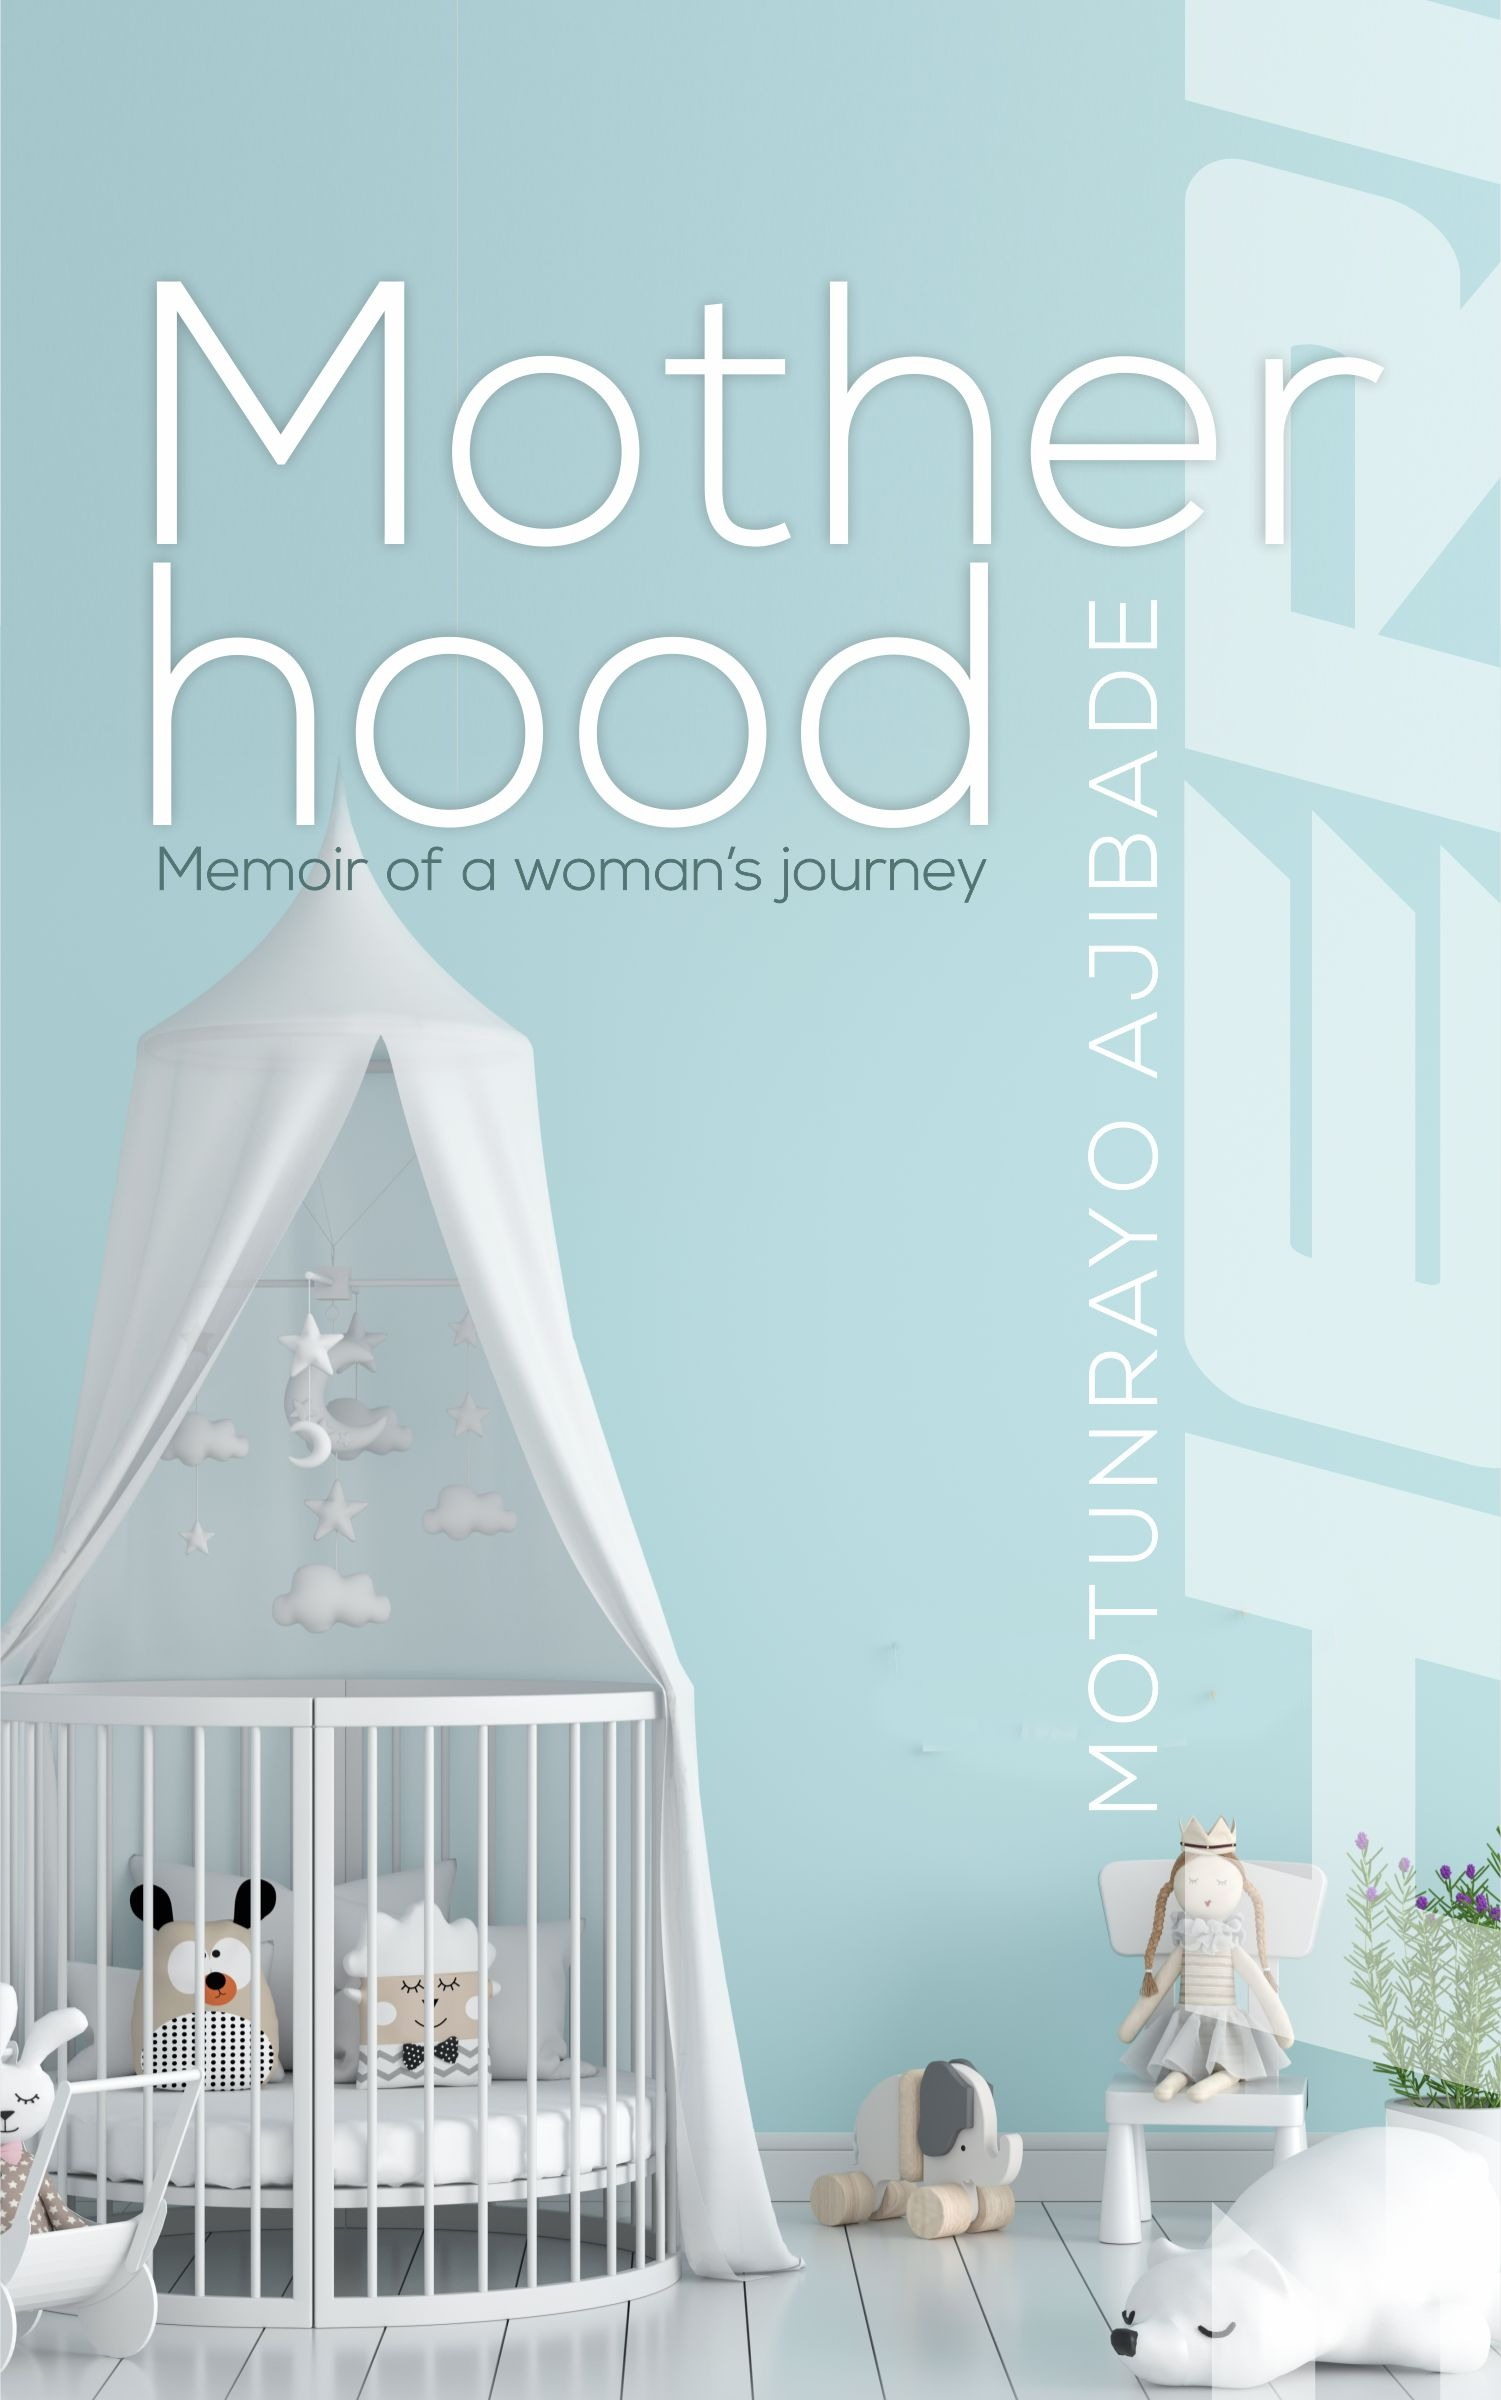 Motherhood: Memoir of a woman's journey